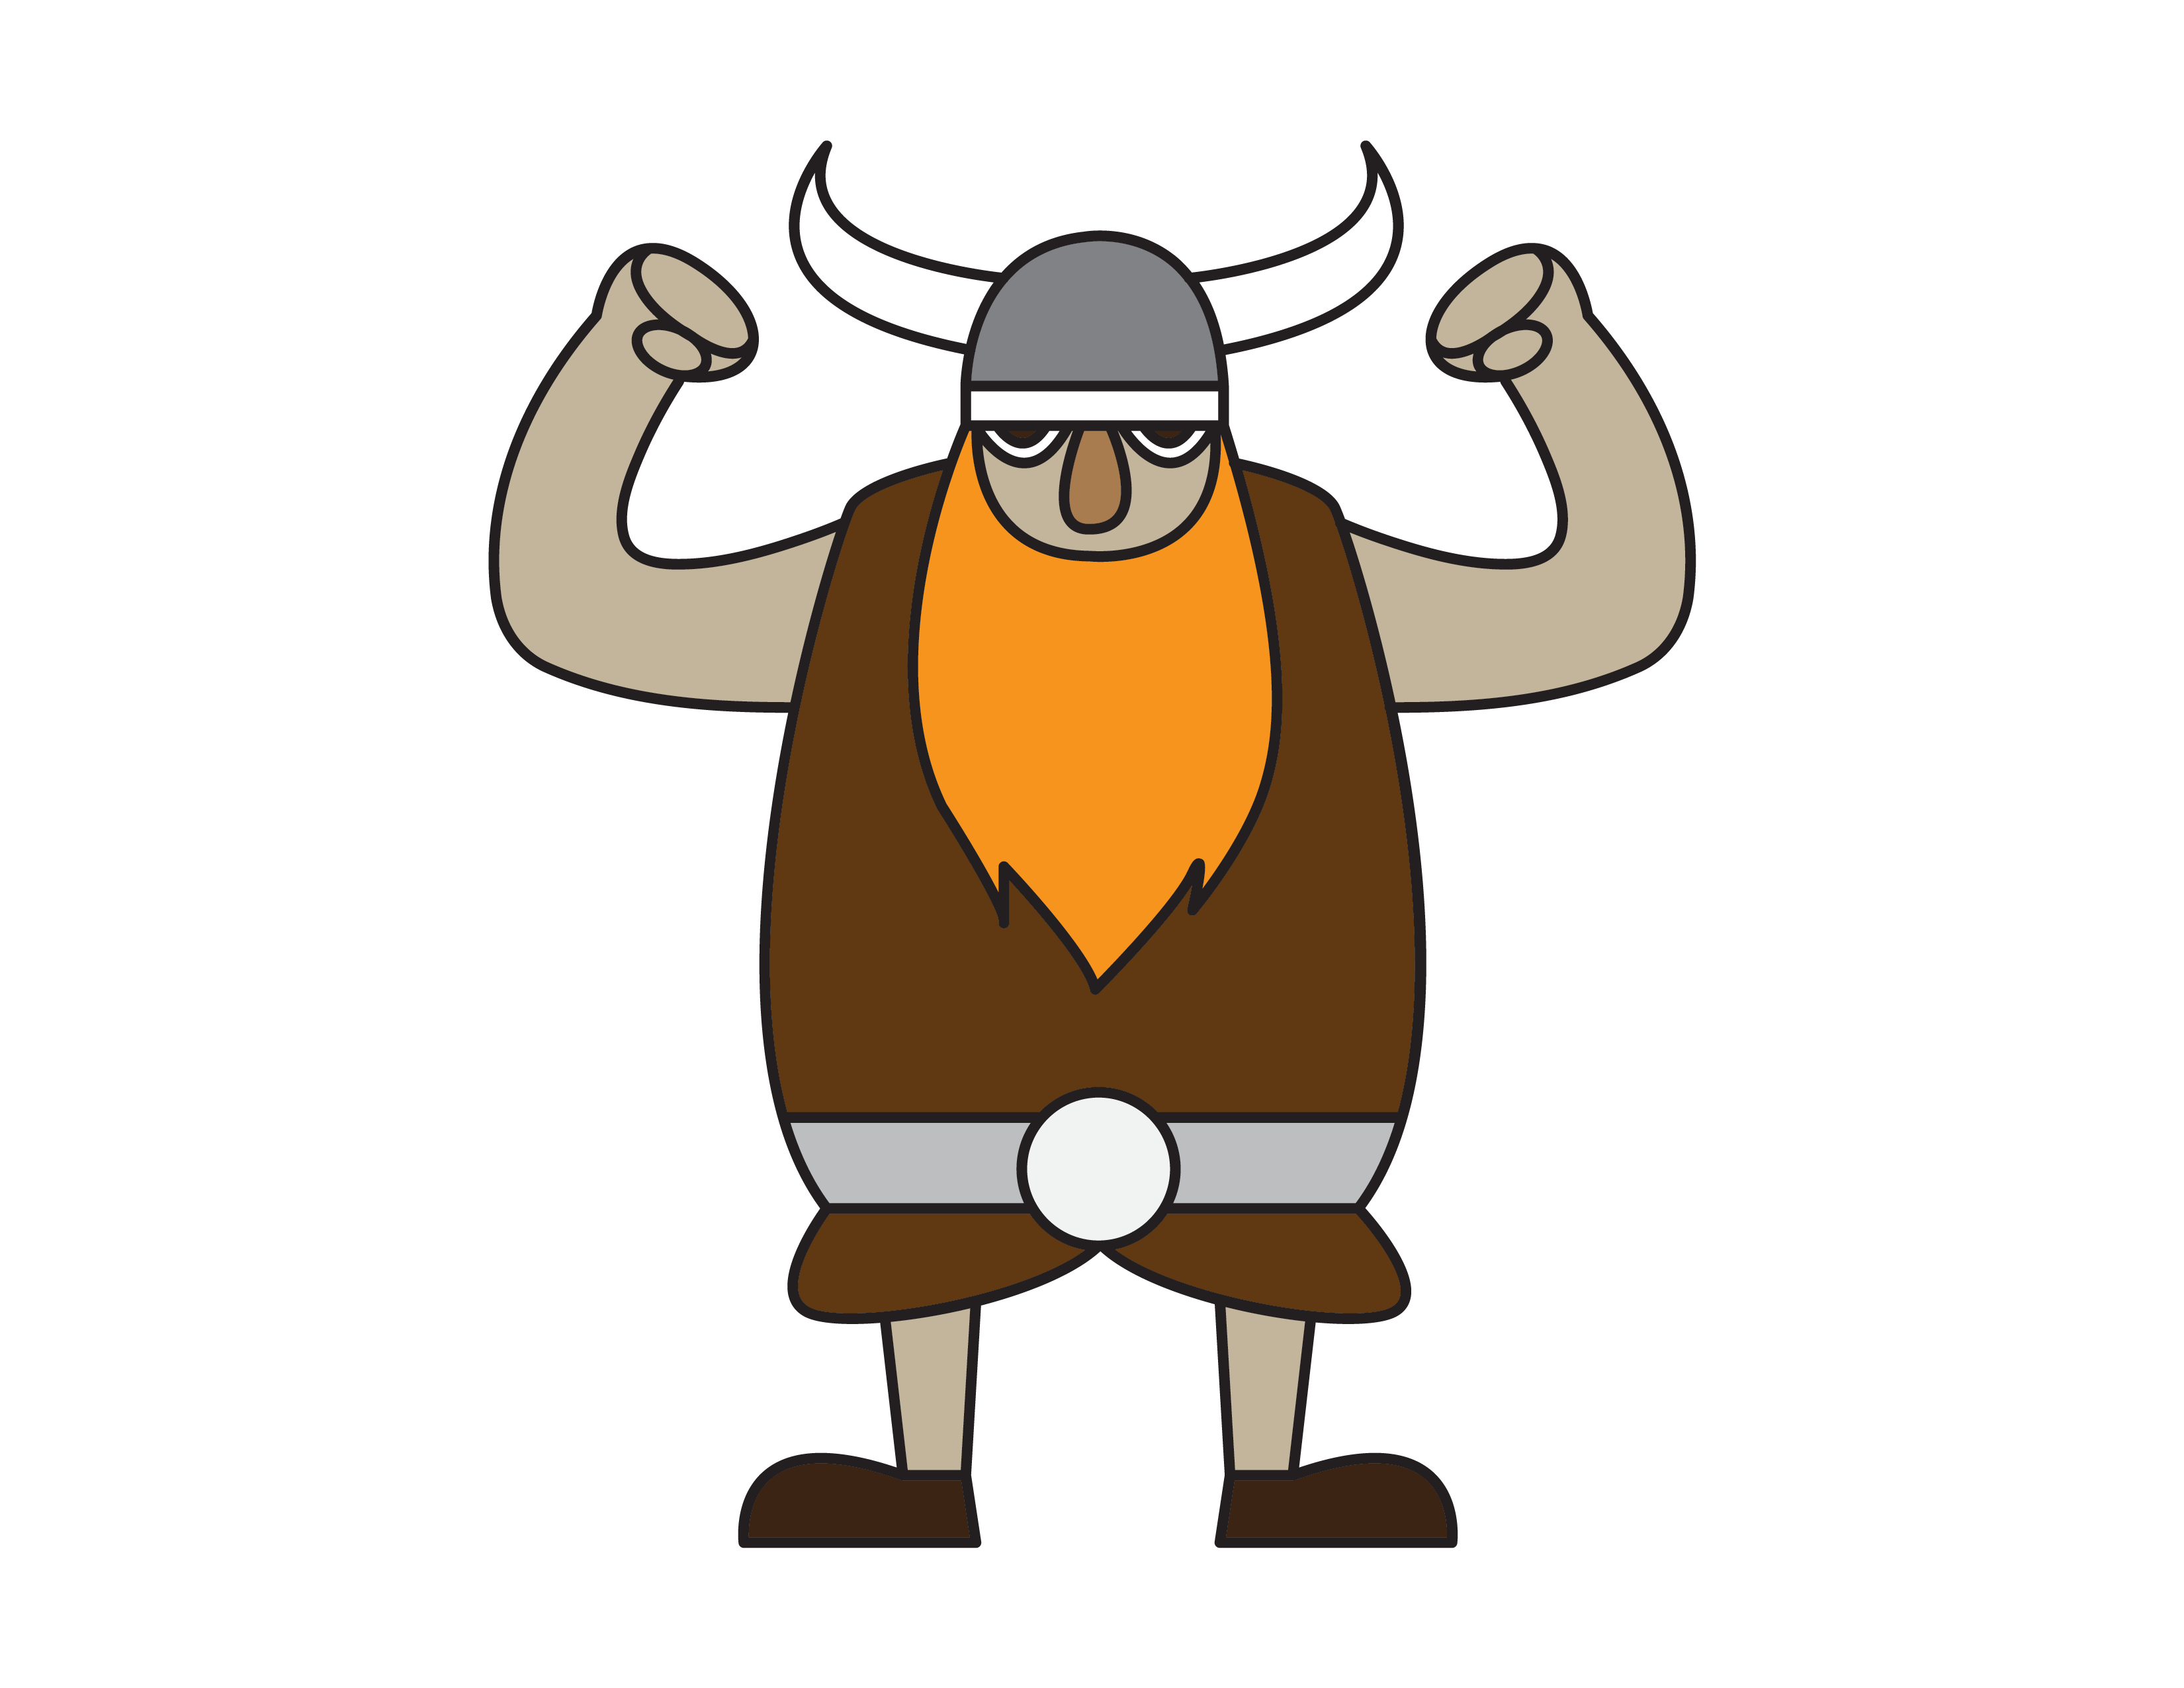 How To Draw a Funny Cartoon Viking Warrior for Young Kids